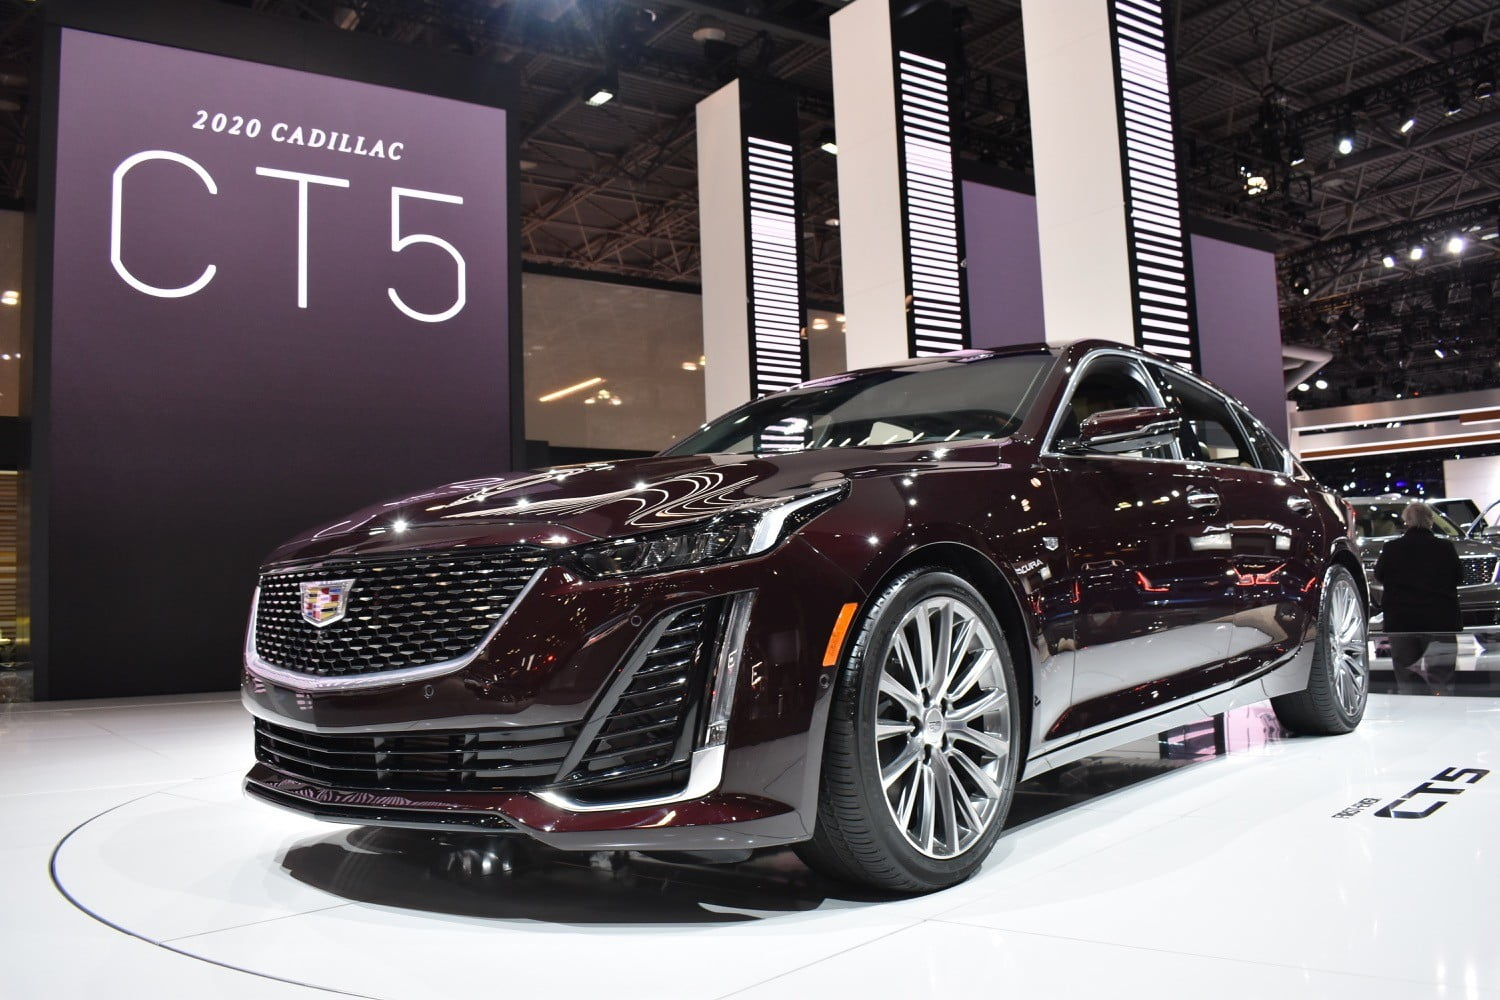 Entry Level 2020 Cadillac Ct5 Sedan Priced At Under 40 000